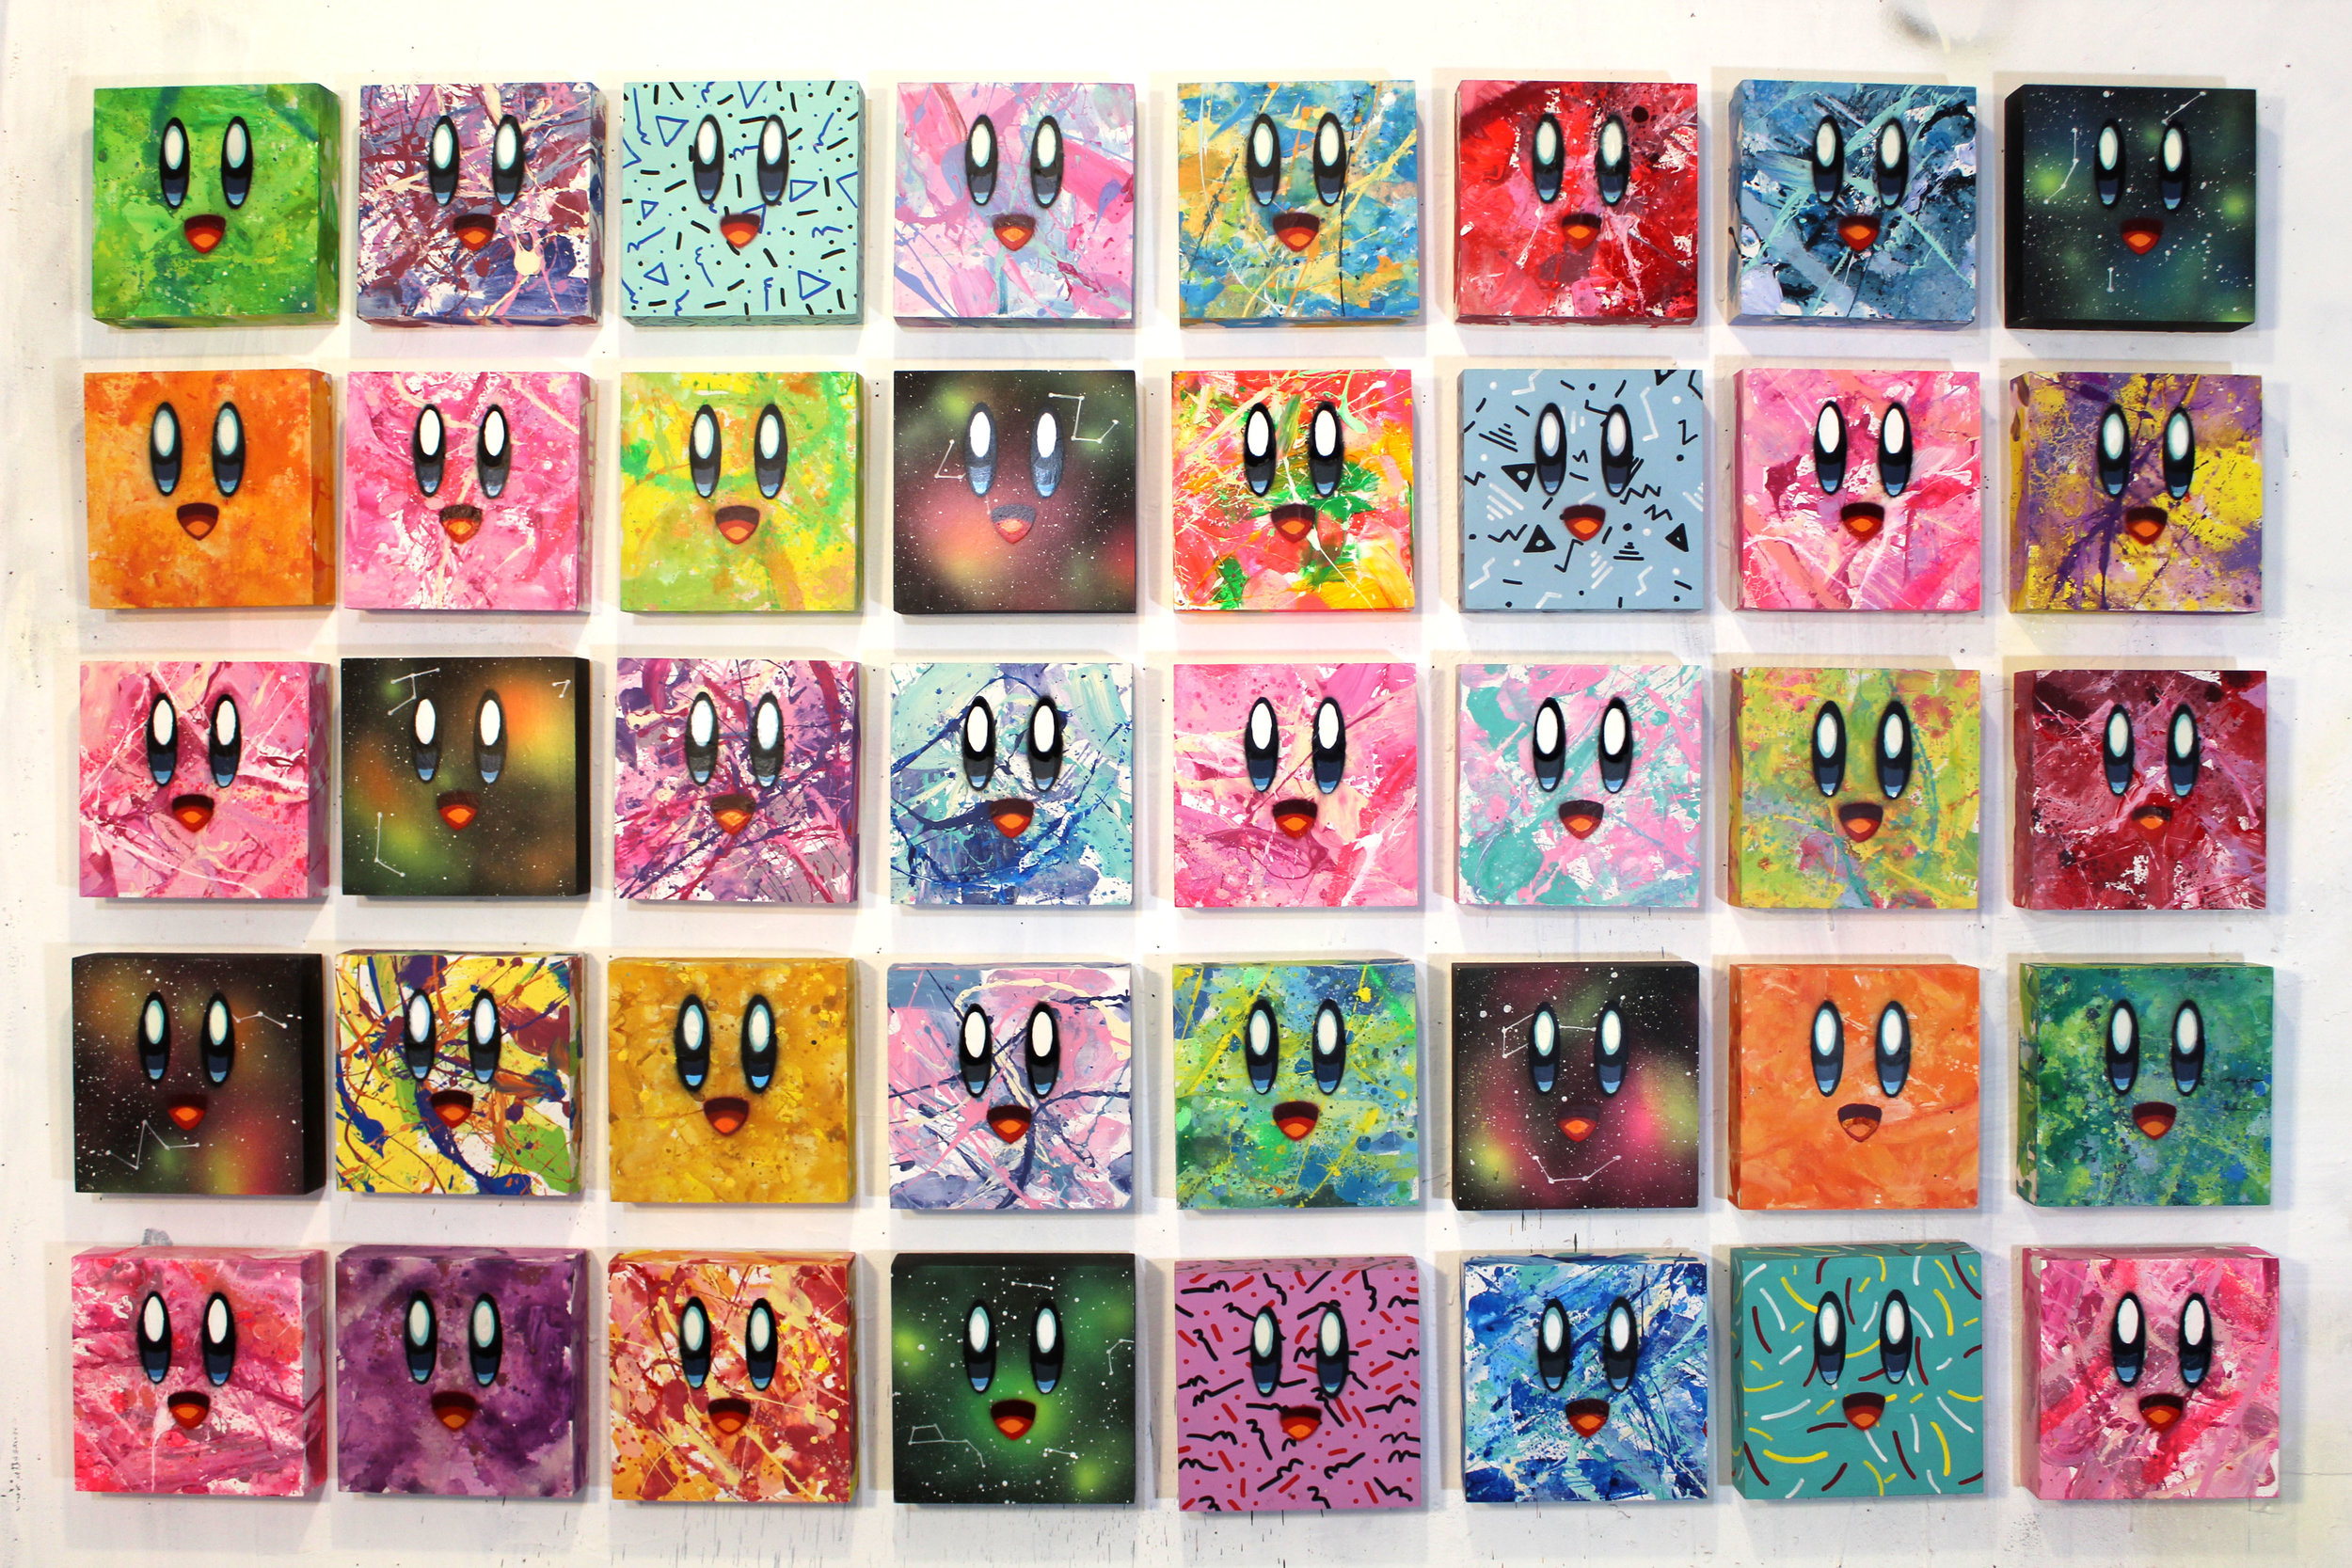 Abstract Kirby Blocks. I wanted to do paintings of my favorite Nintendo character, but I wanted to incorporate what he's also known for: A cute face and many colors. Taking that idea, I have a blast throwing paint around, making 90's patterns or a space background. In the end, each Kirby is one of a kind.